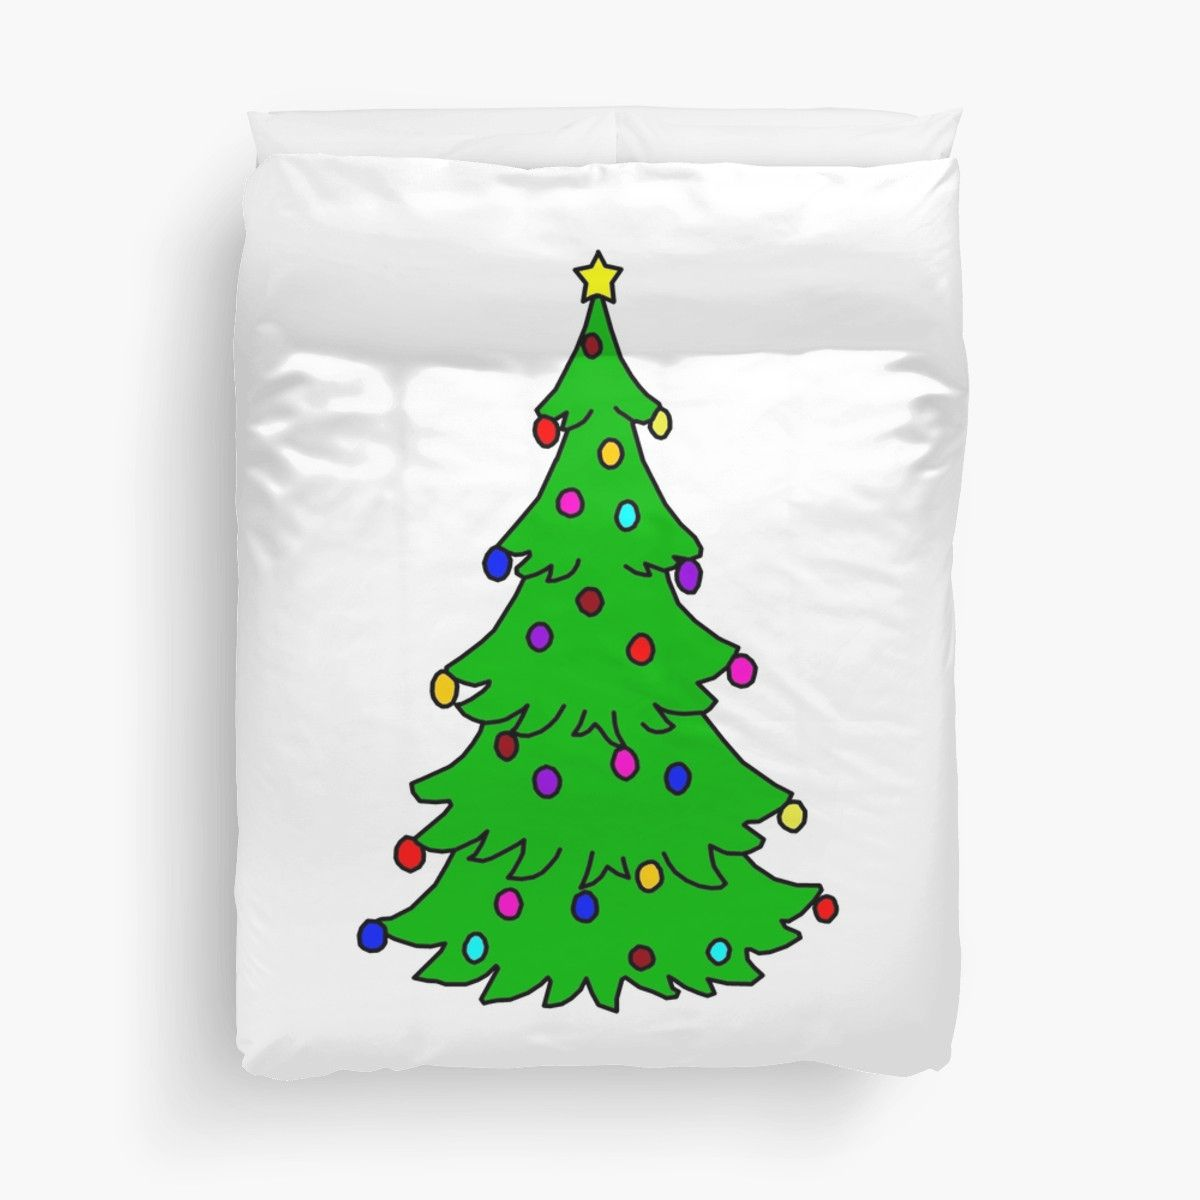 This Christmas tree design duvet cover will brighten up any room and ...